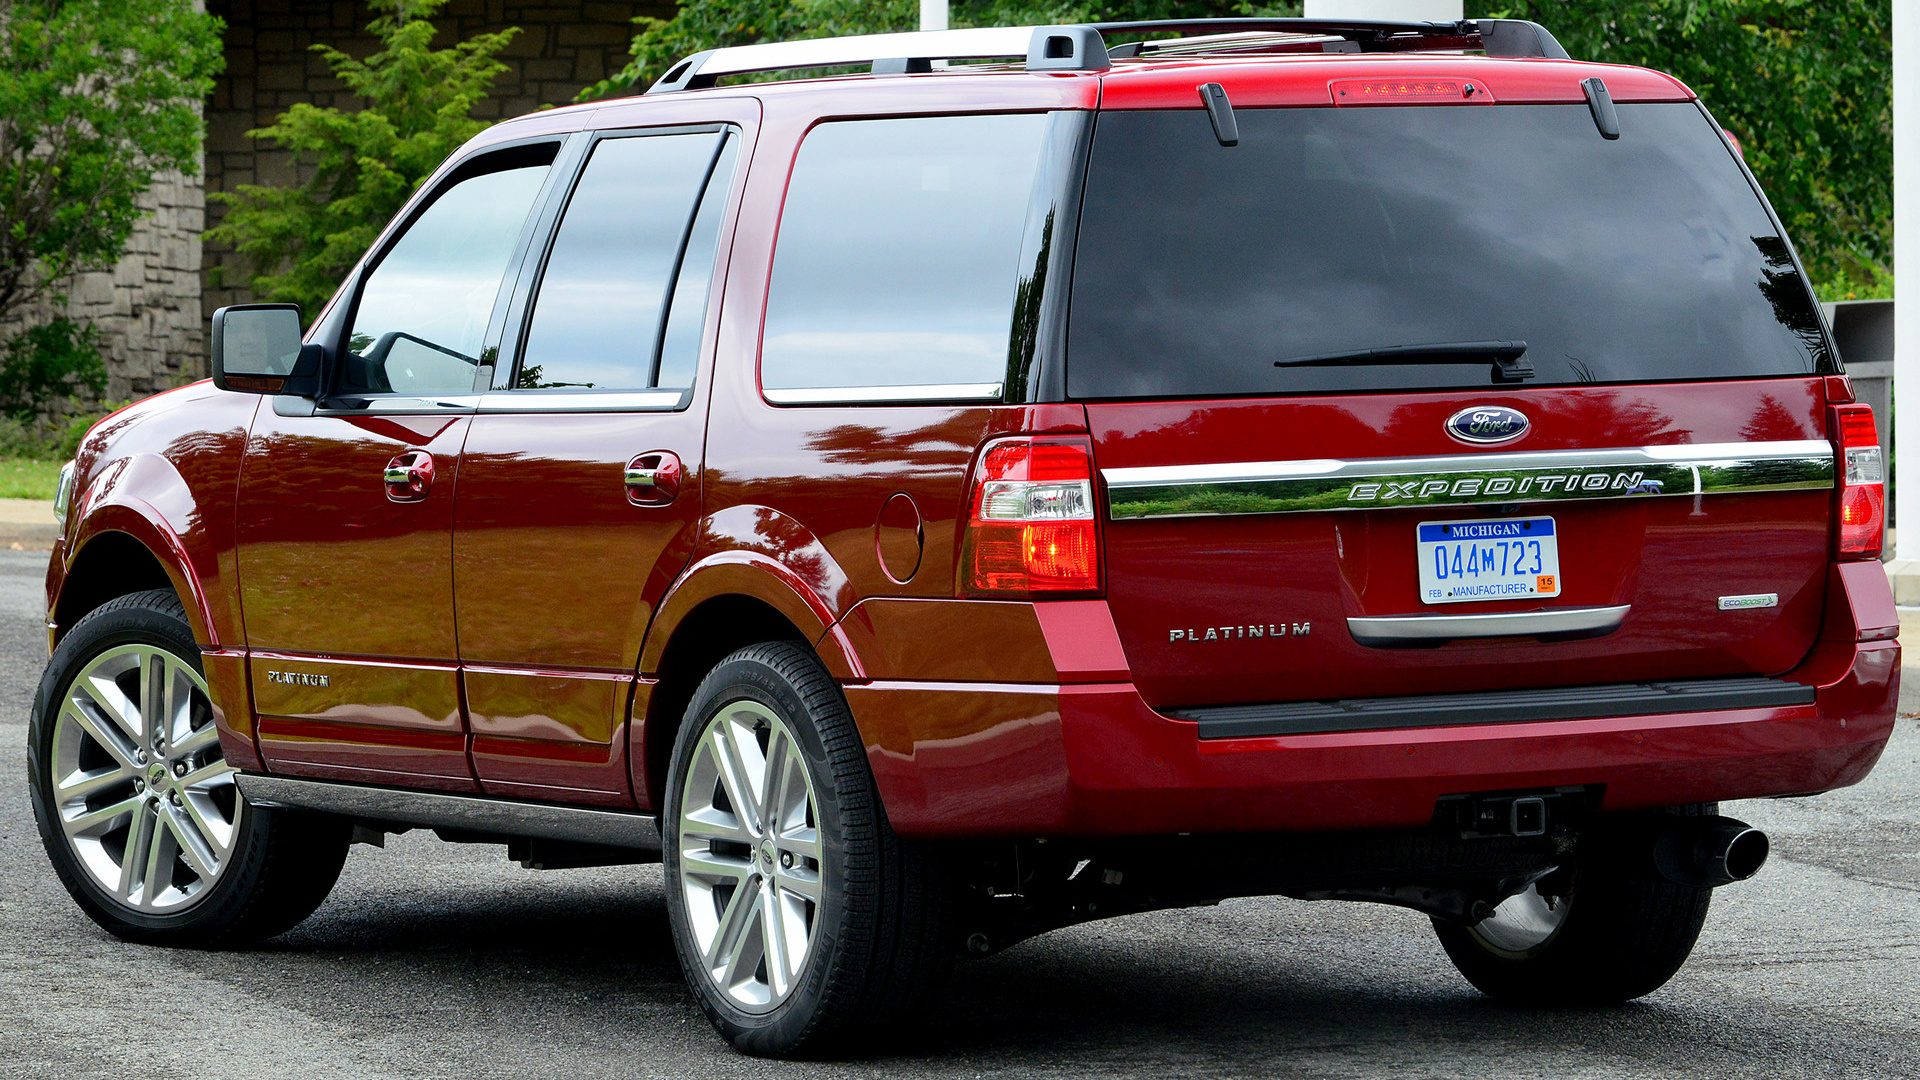 Ford Expedition Platinum (2015) Wallpapers and HD Images ...